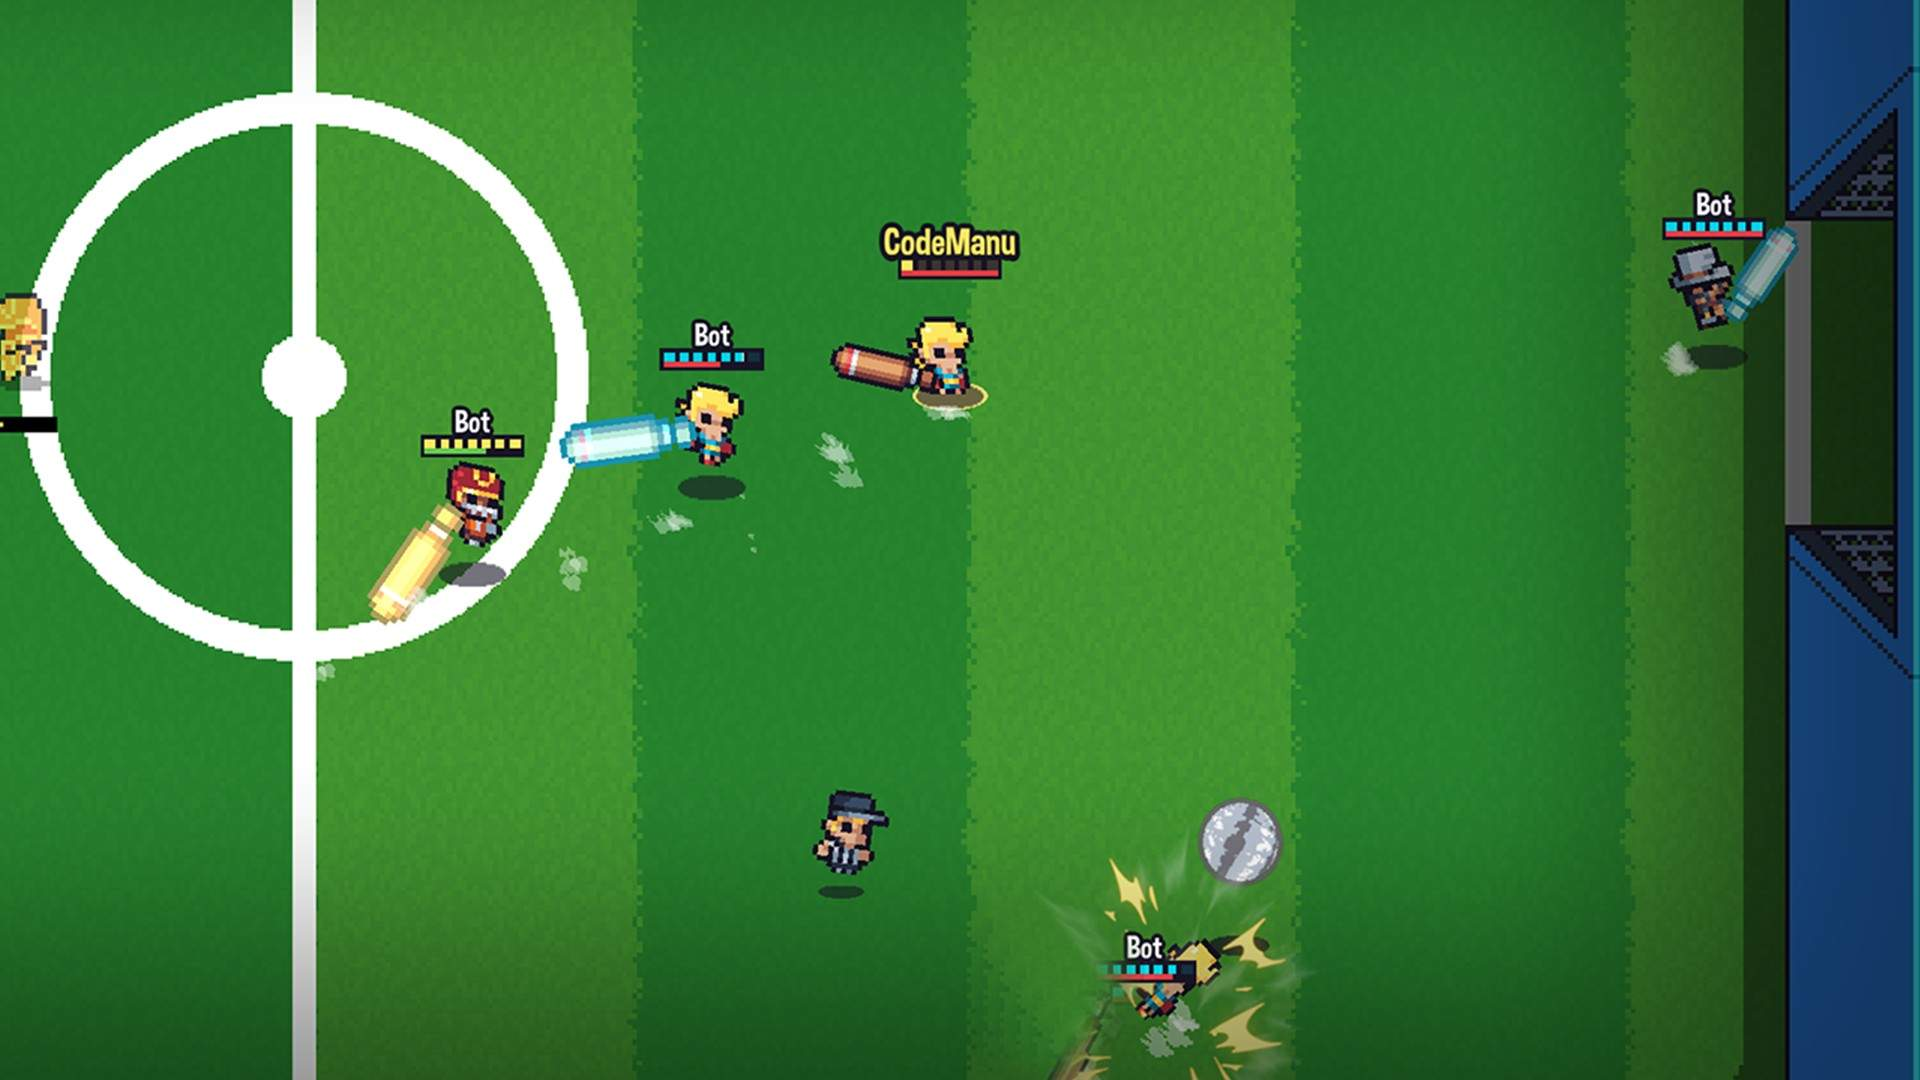 Guts 'N Goals Brings Couch Co-op Soccer with Baseball Bats to Xbox Today 1